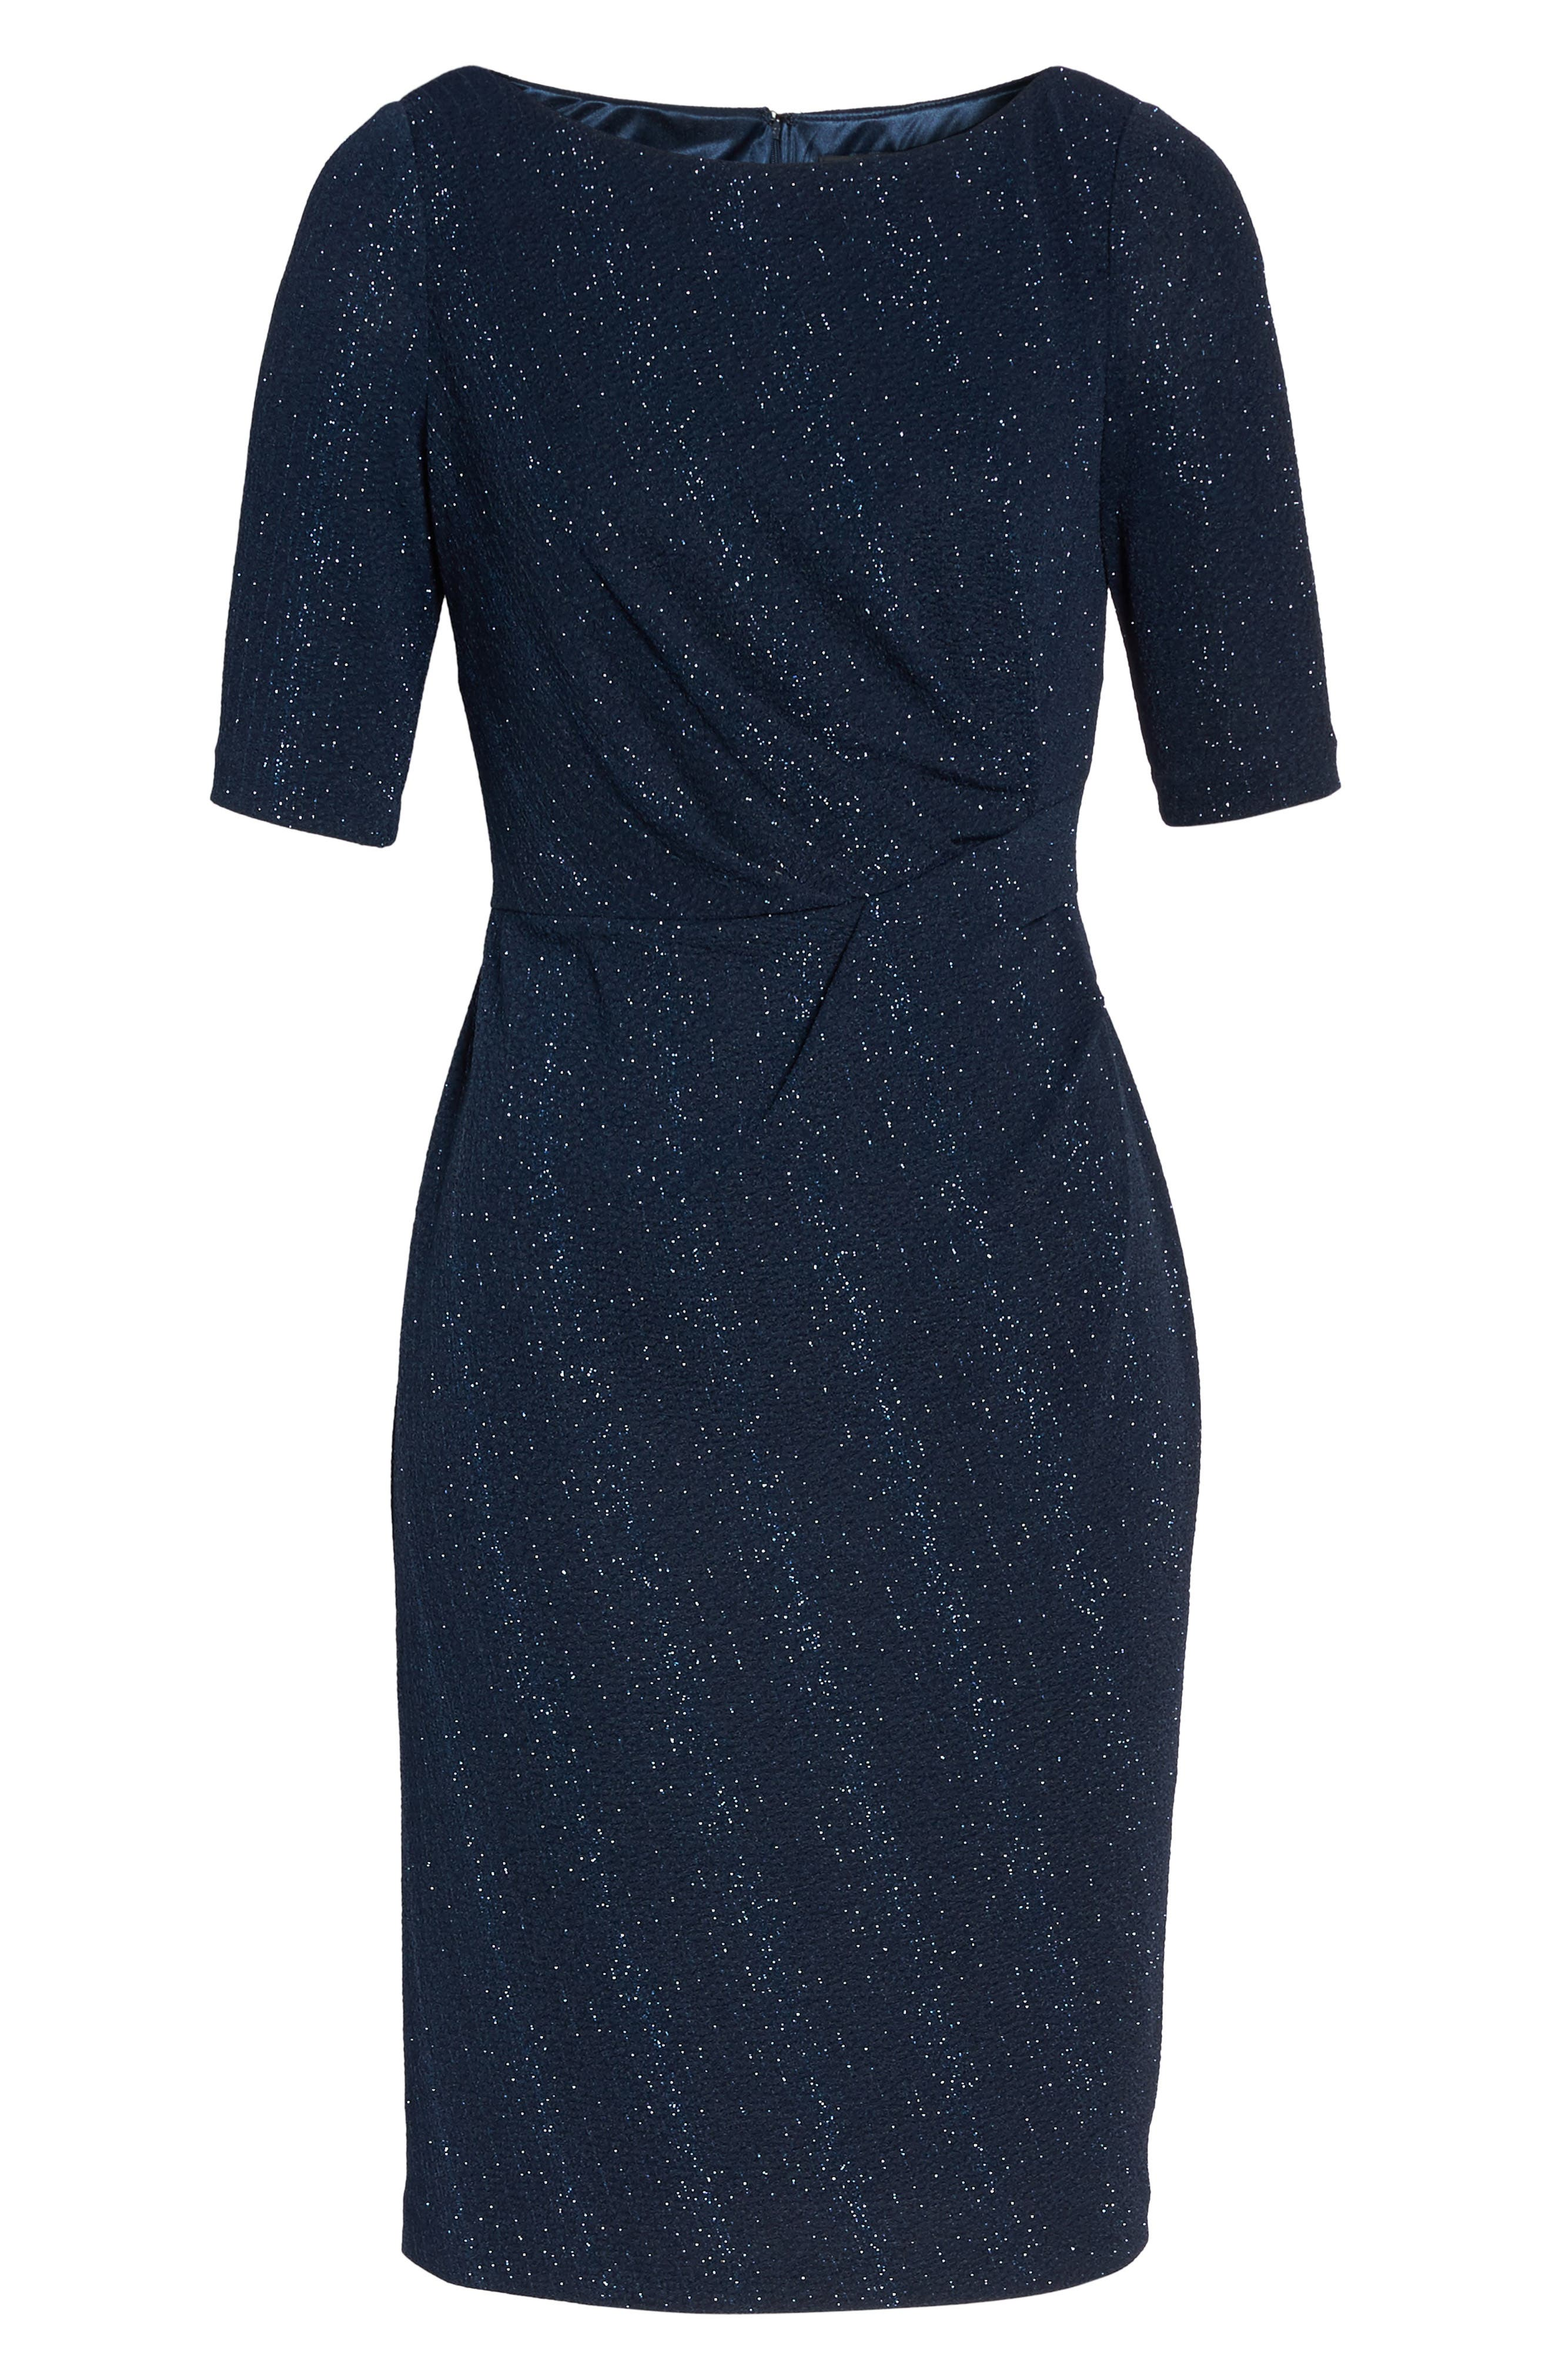 Glitter Knit Sheath Dress,                             Alternate thumbnail 6, color,                             410